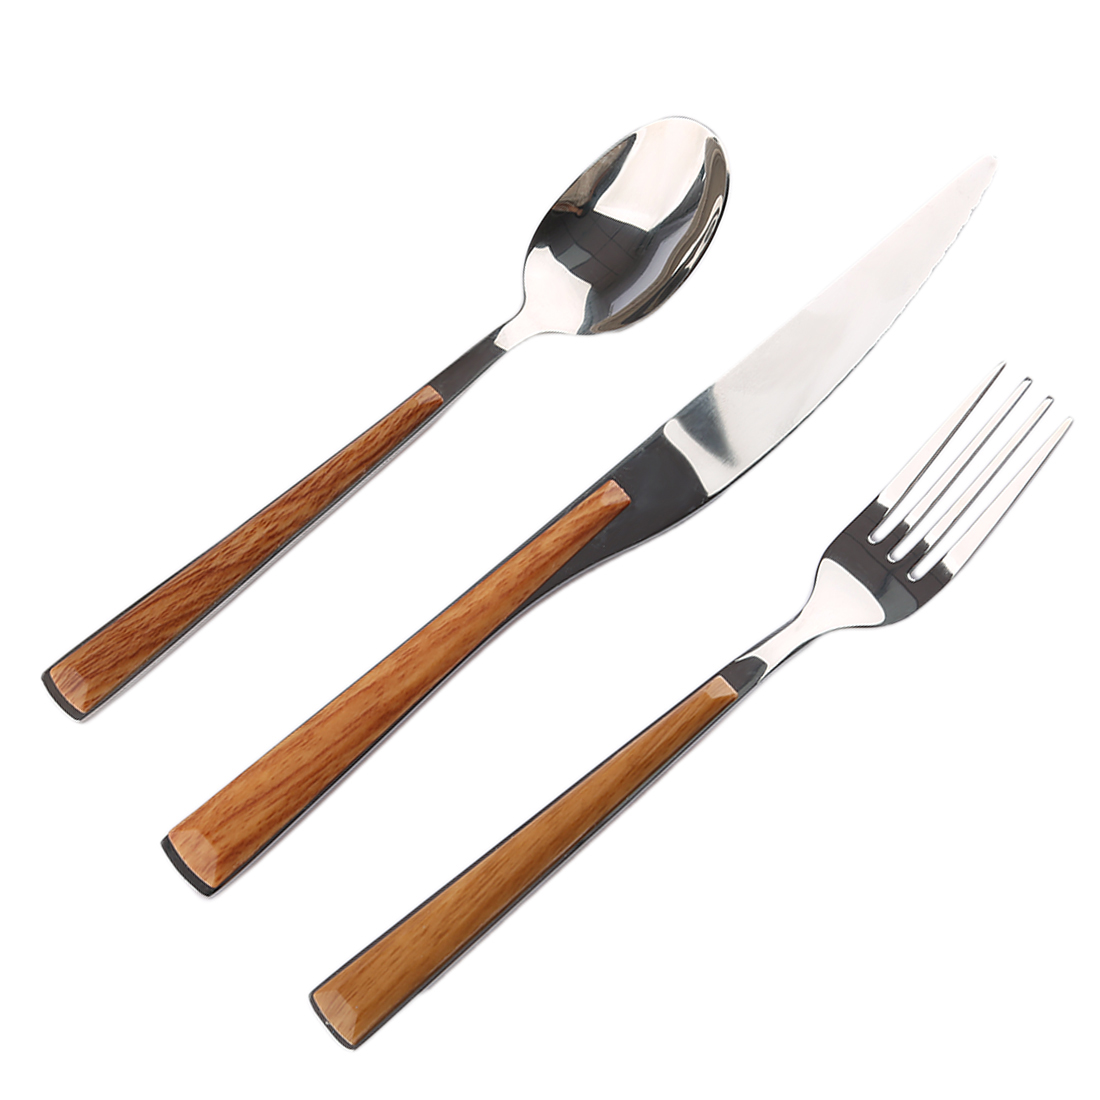 Imitation Wood Handle Stainless Steel Portable Tableware Dinnerware Travel Cutlery Set with Fork Spoon Knife - Silver